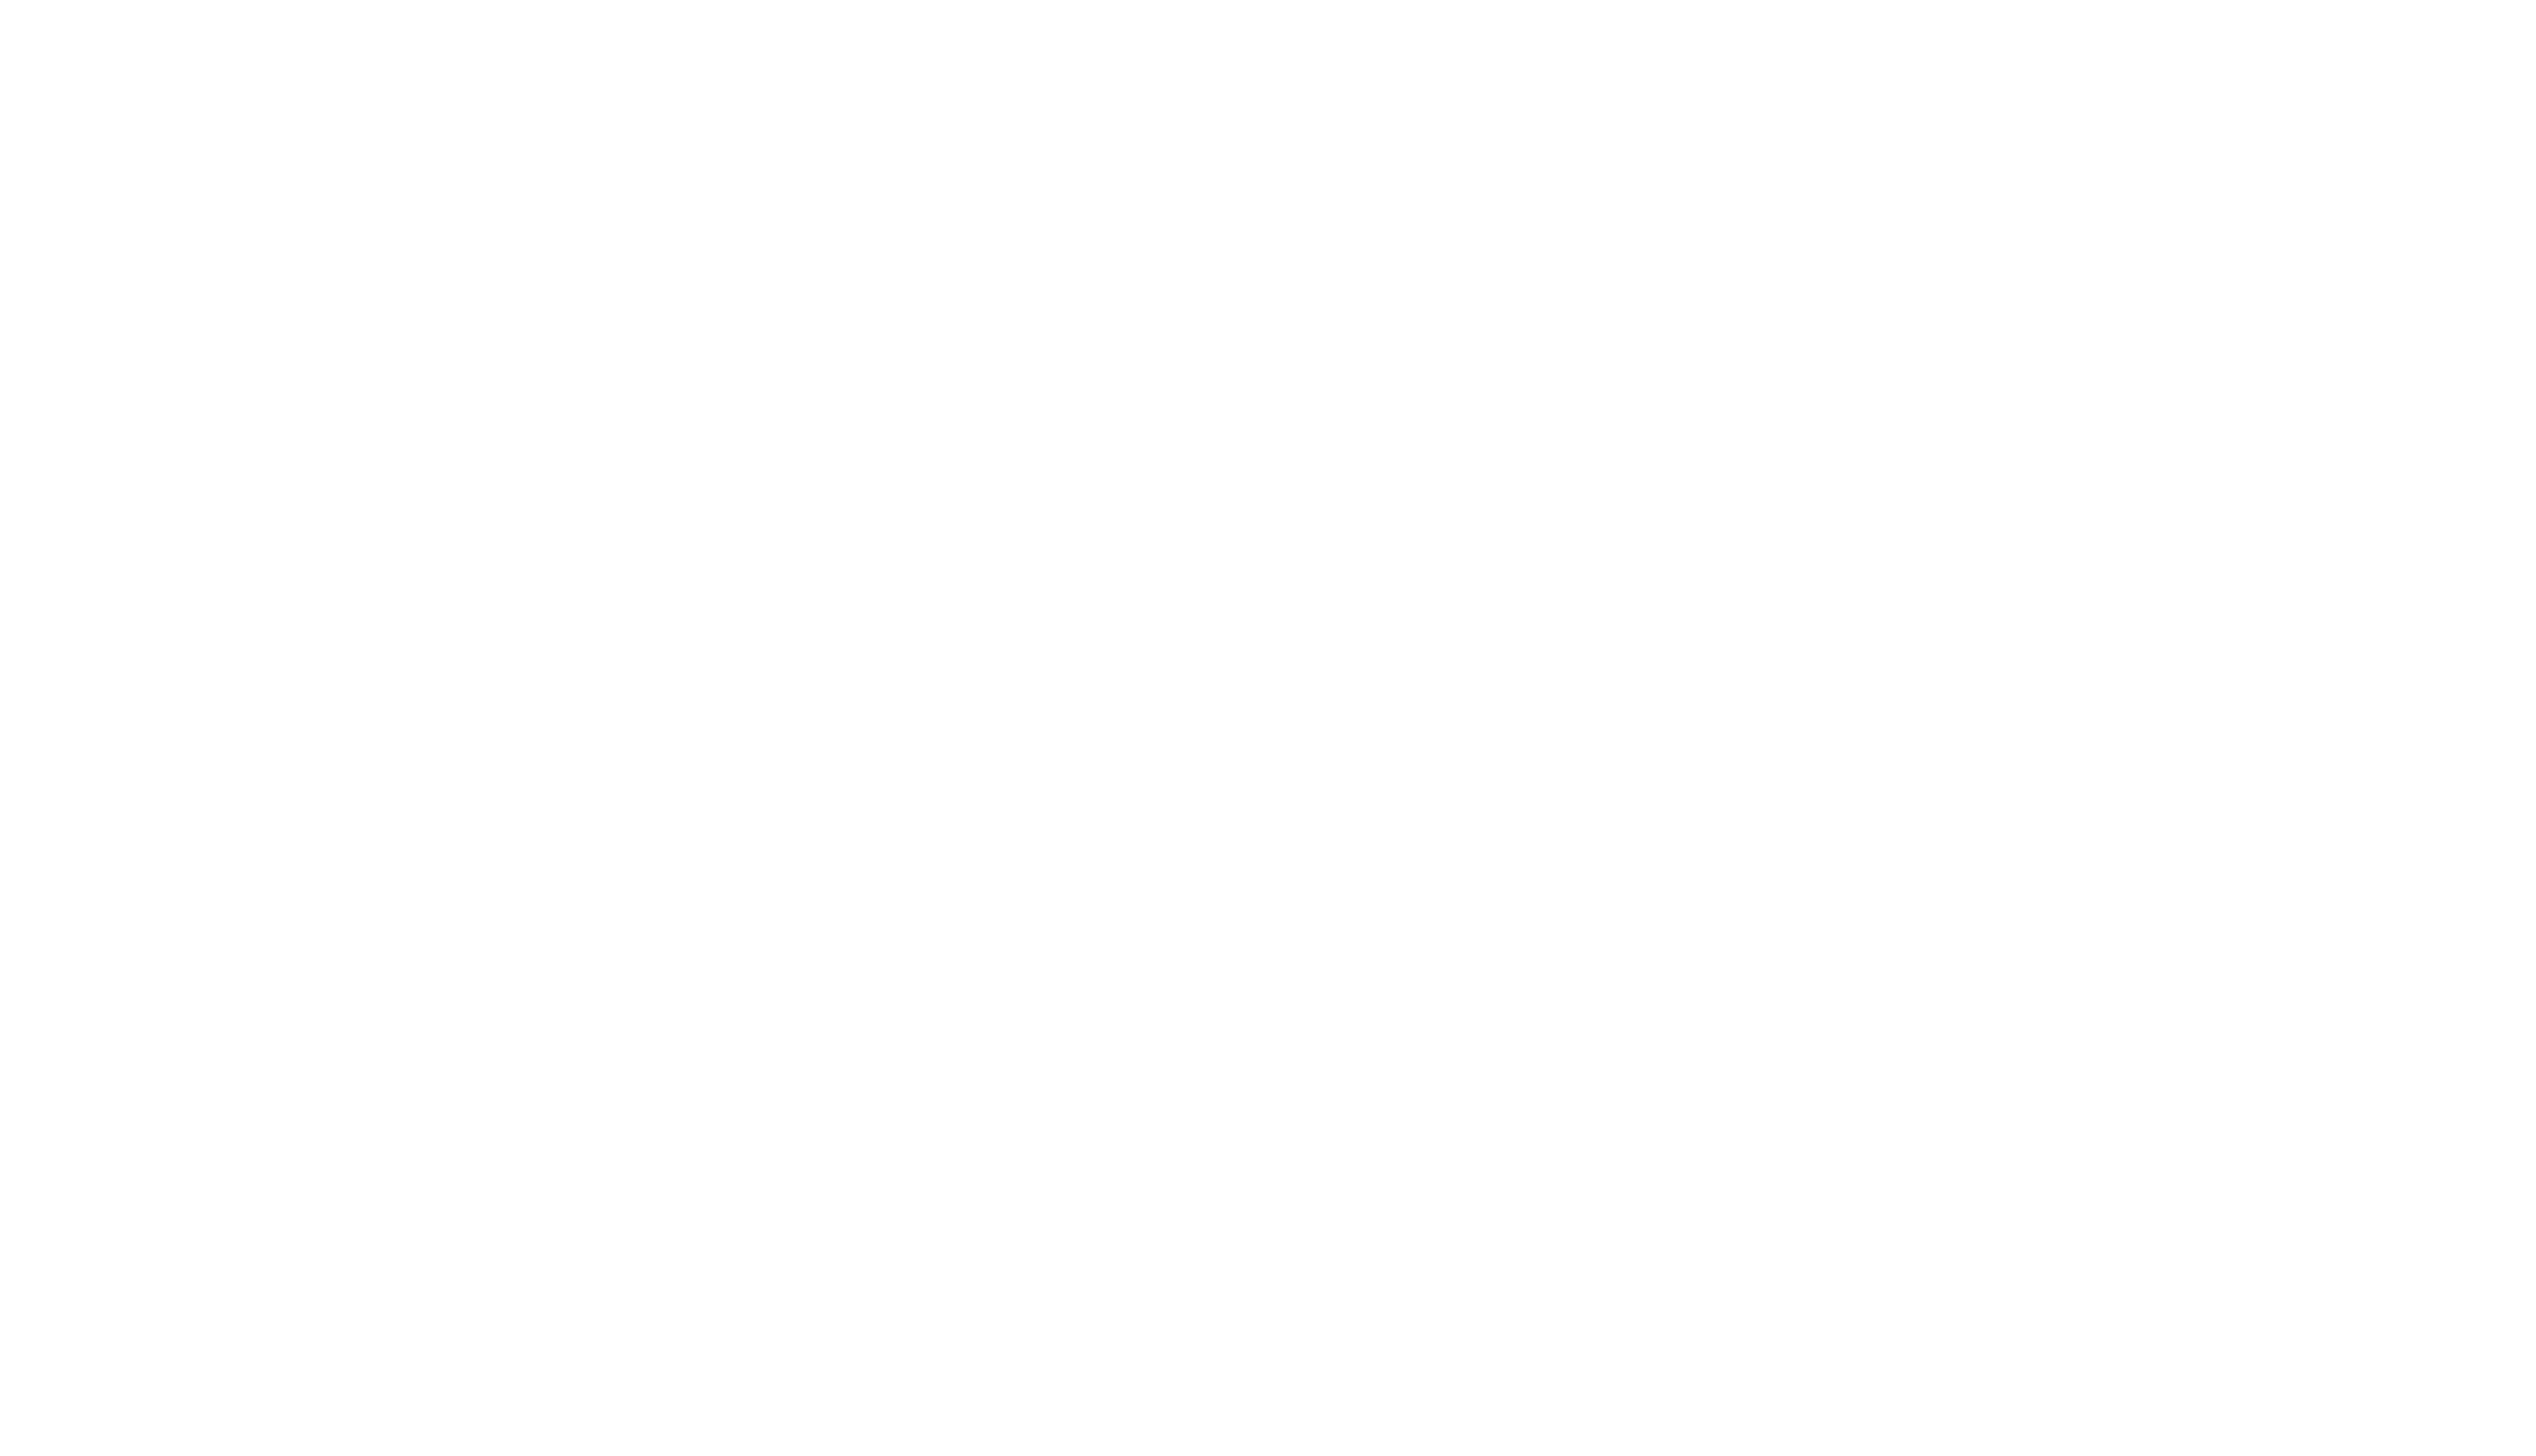 Travel Tribe Africa